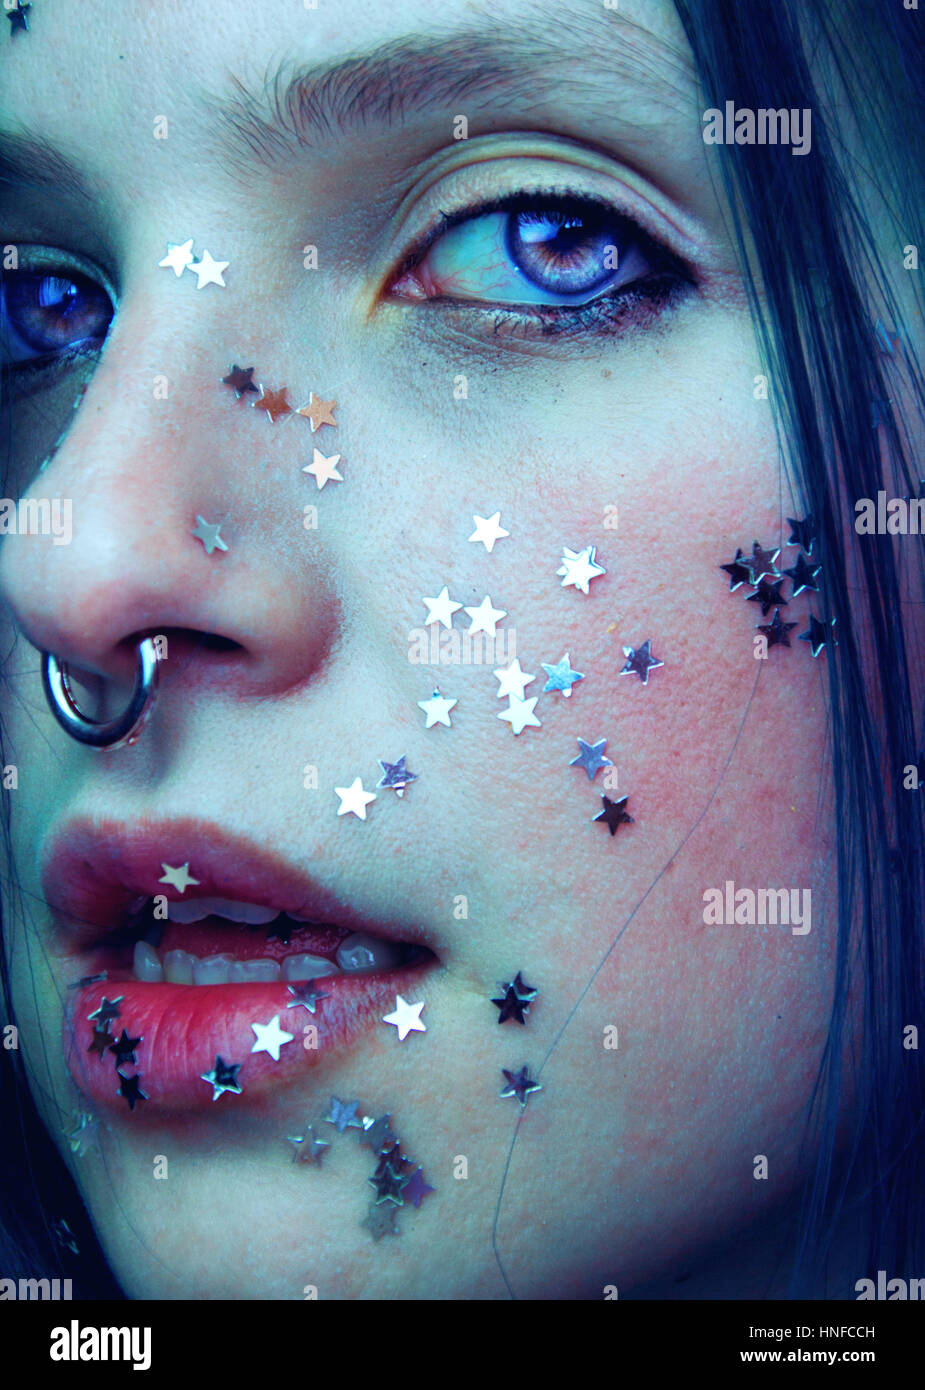 Artistic portrait of  a woman with her face covering with a lot of silver stars - Stock Image